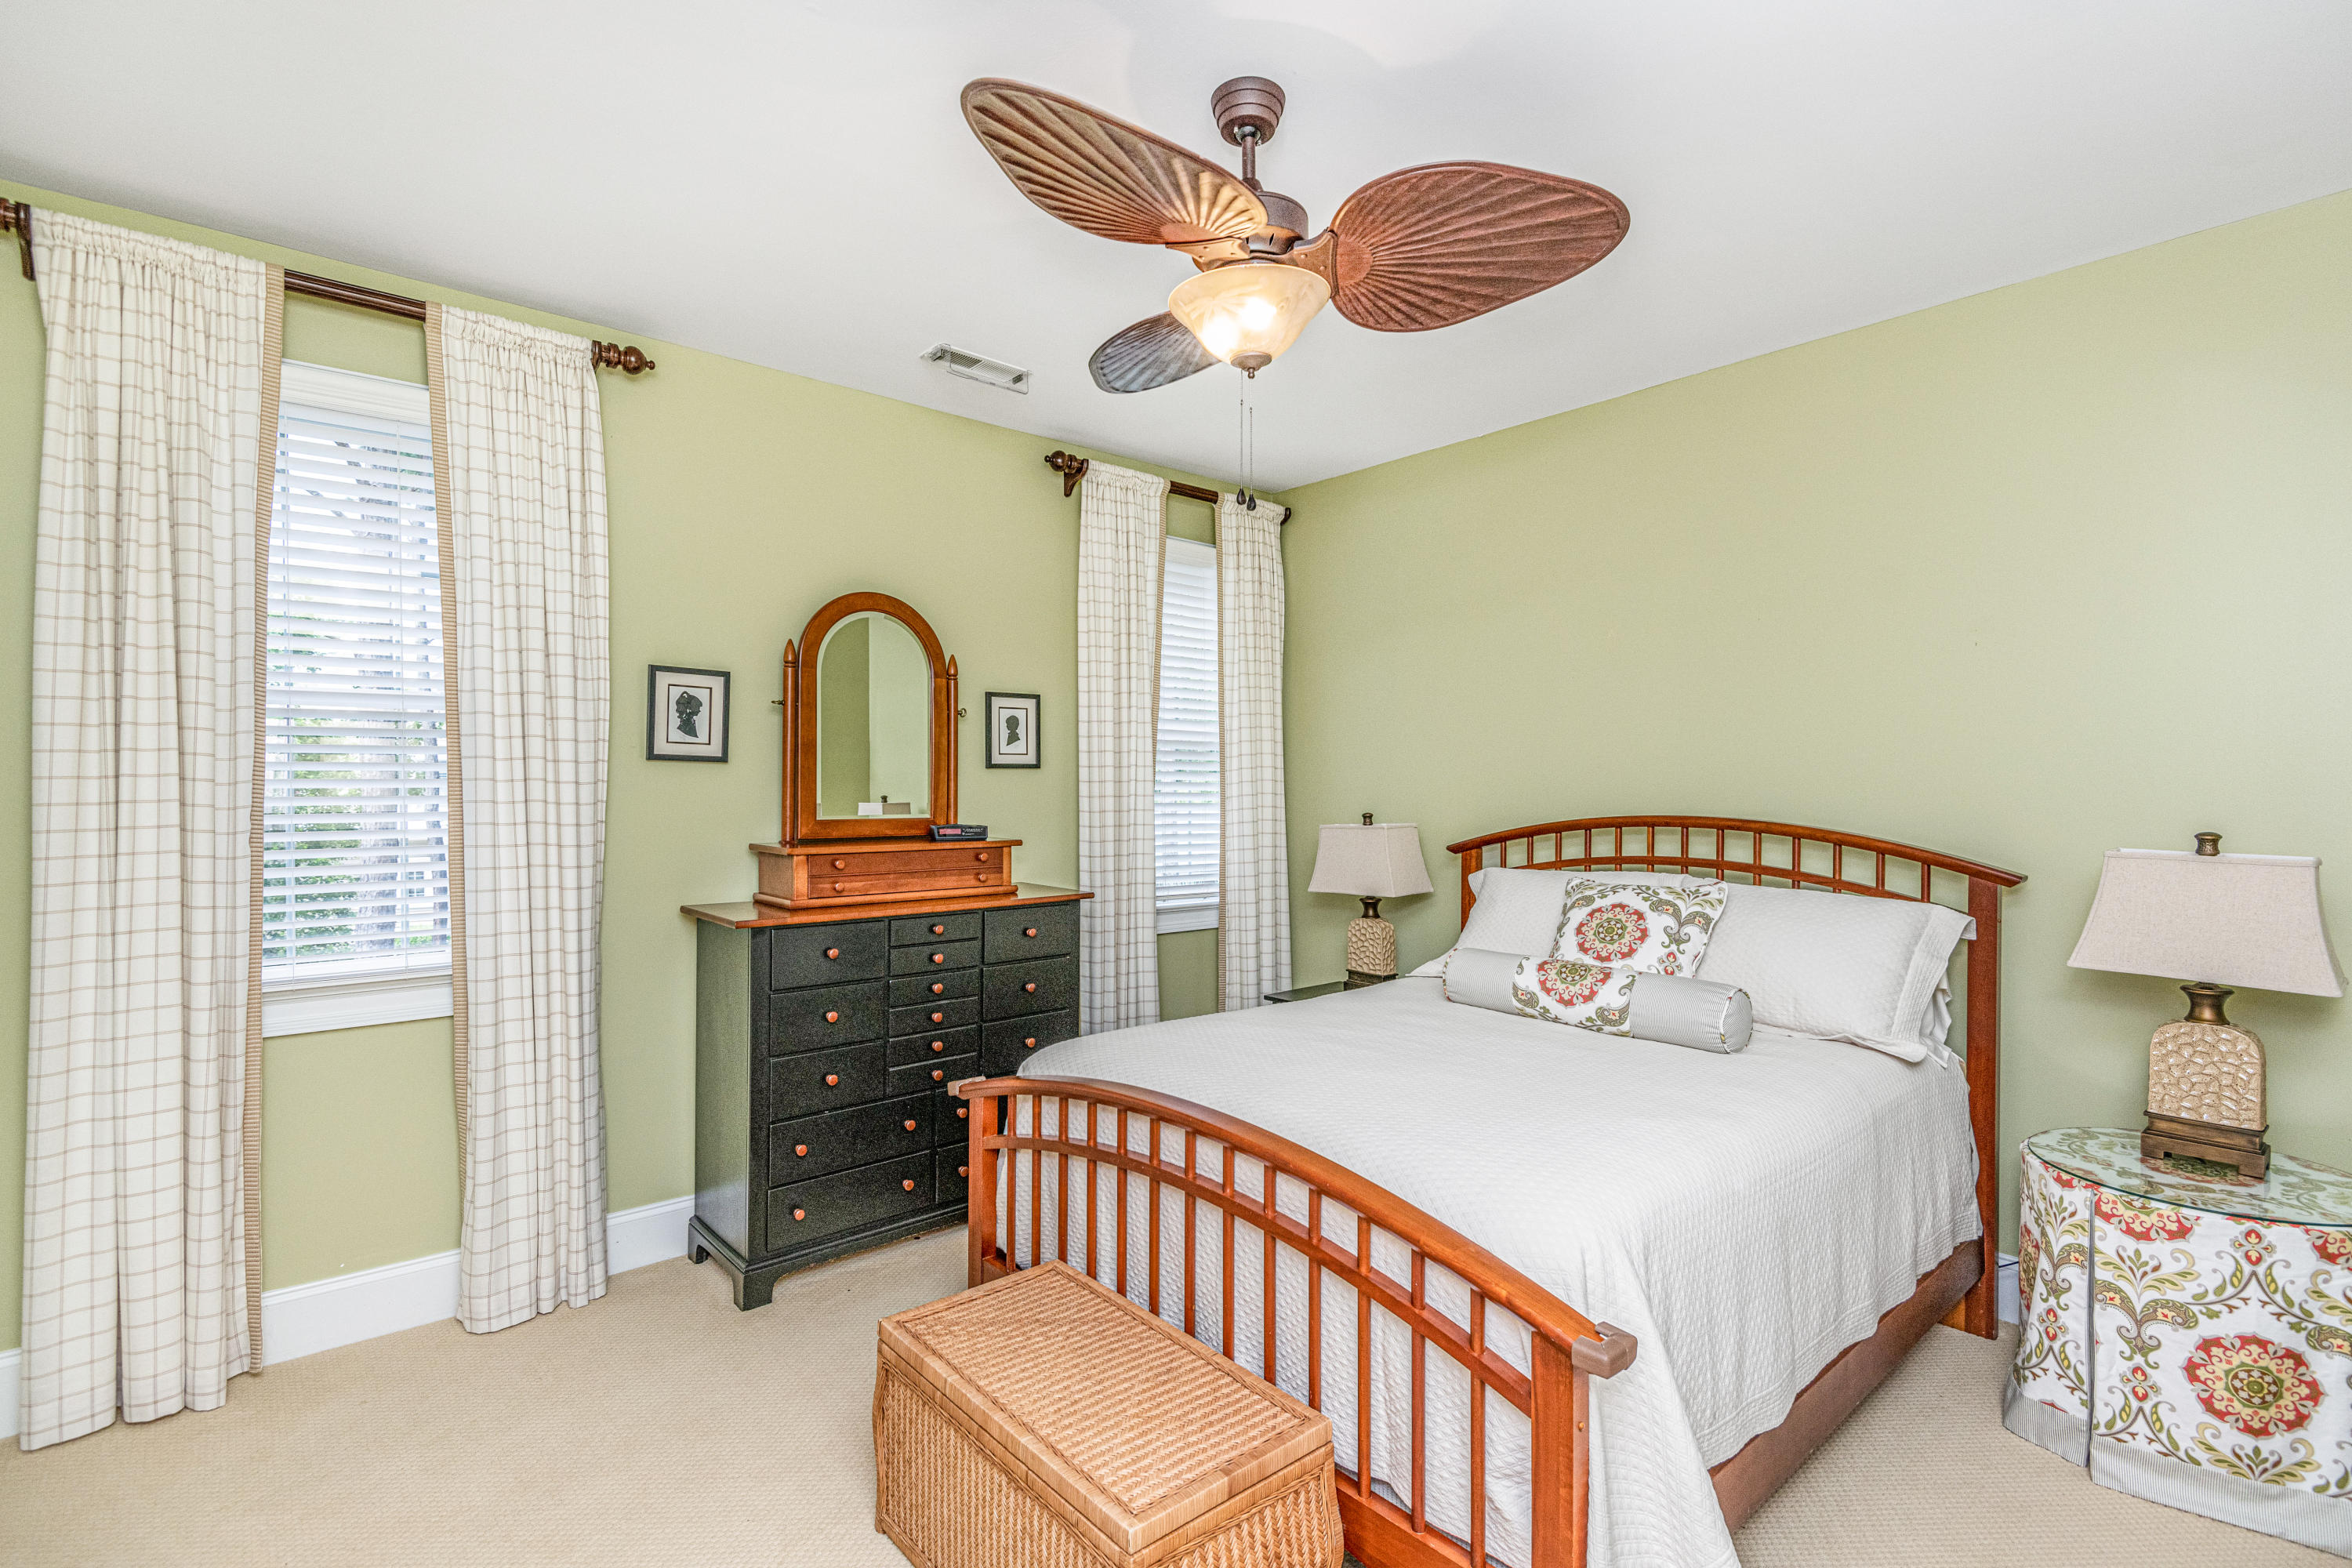 Dunes West Homes For Sale - 1837 Shell Ring, Mount Pleasant, SC - 0